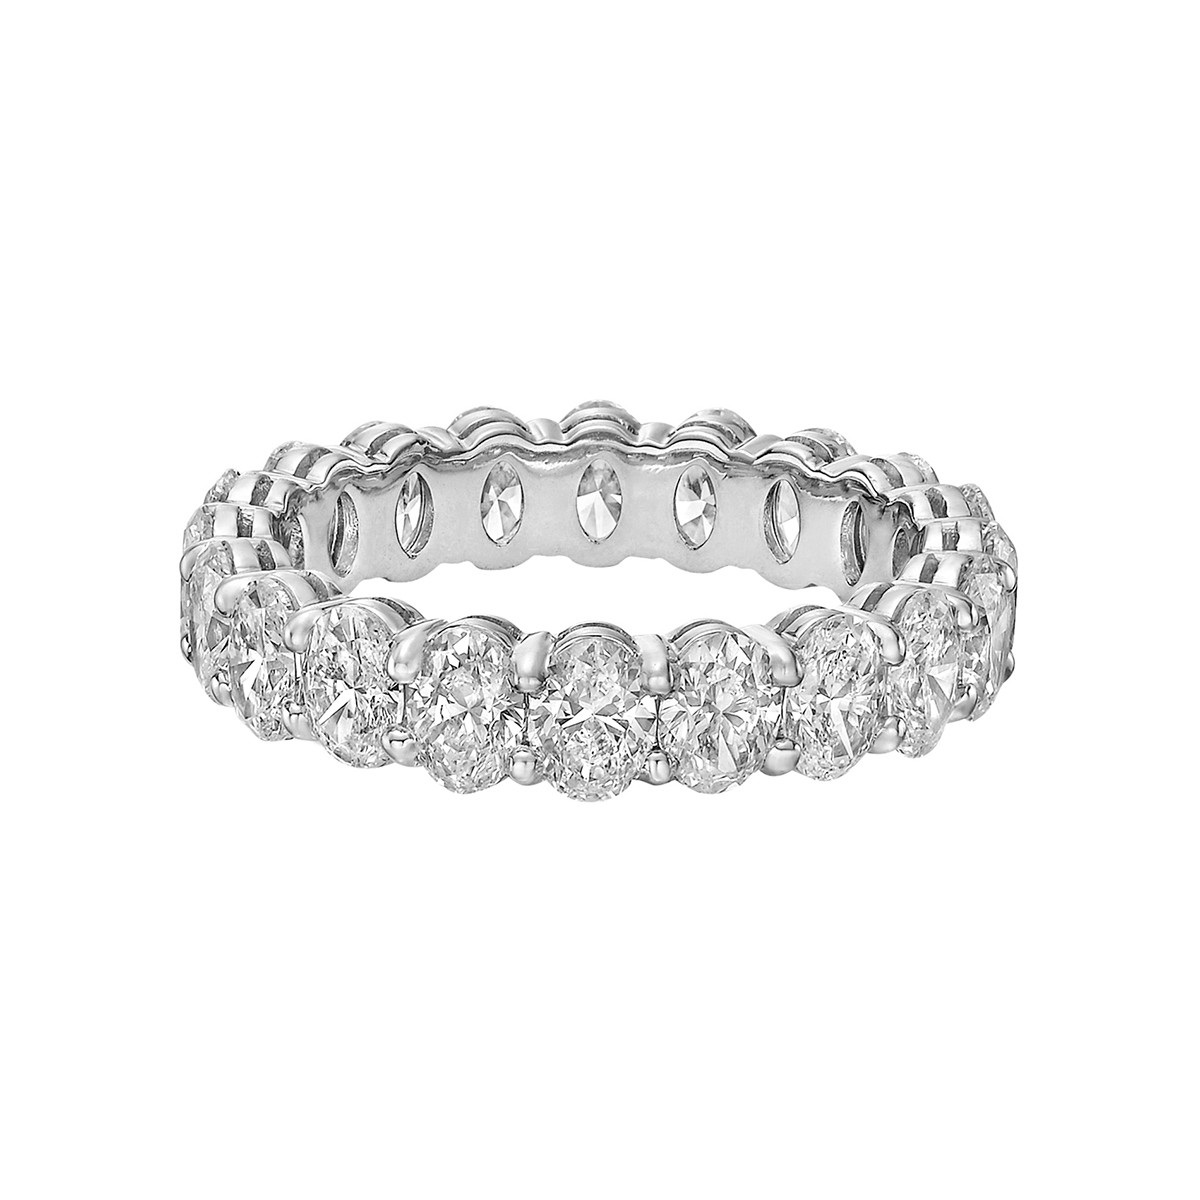 Oval-Cut Diamond Eternity Band (3.77tcw)